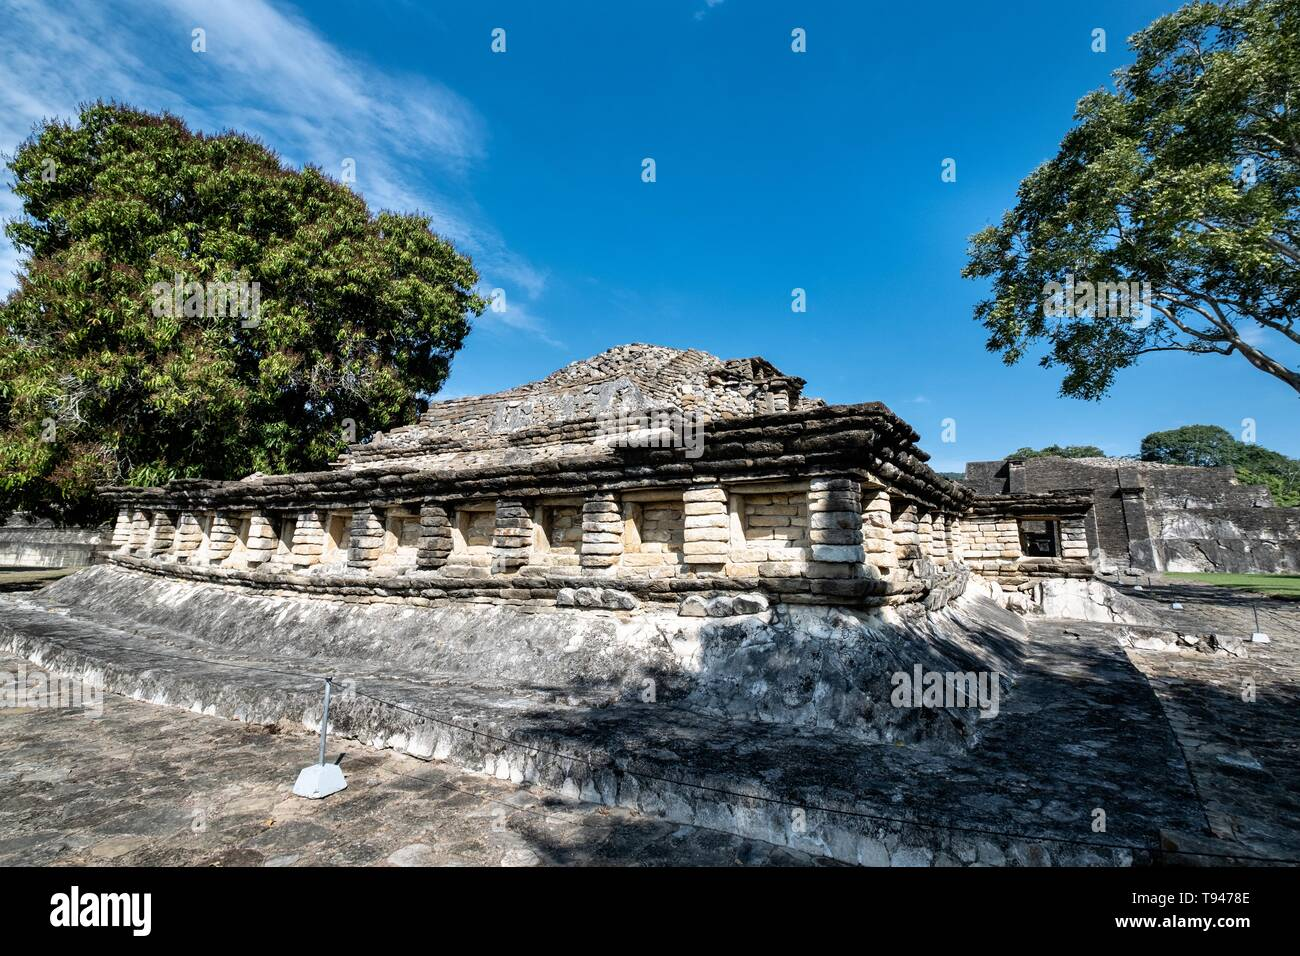 Mesoamerica residents called Tajin Chico at the pre-Columbian archeological site of El Tajin in Tajin, Veracruz, Mexico. El Tajín flourished from 600 to 1200 CE and during this time numerous temples, palaces, ballcourts, and pyramids were built by the Totonac people and is one of the largest and most important cities of the Classic era of Mesoamerica. - Stock Image